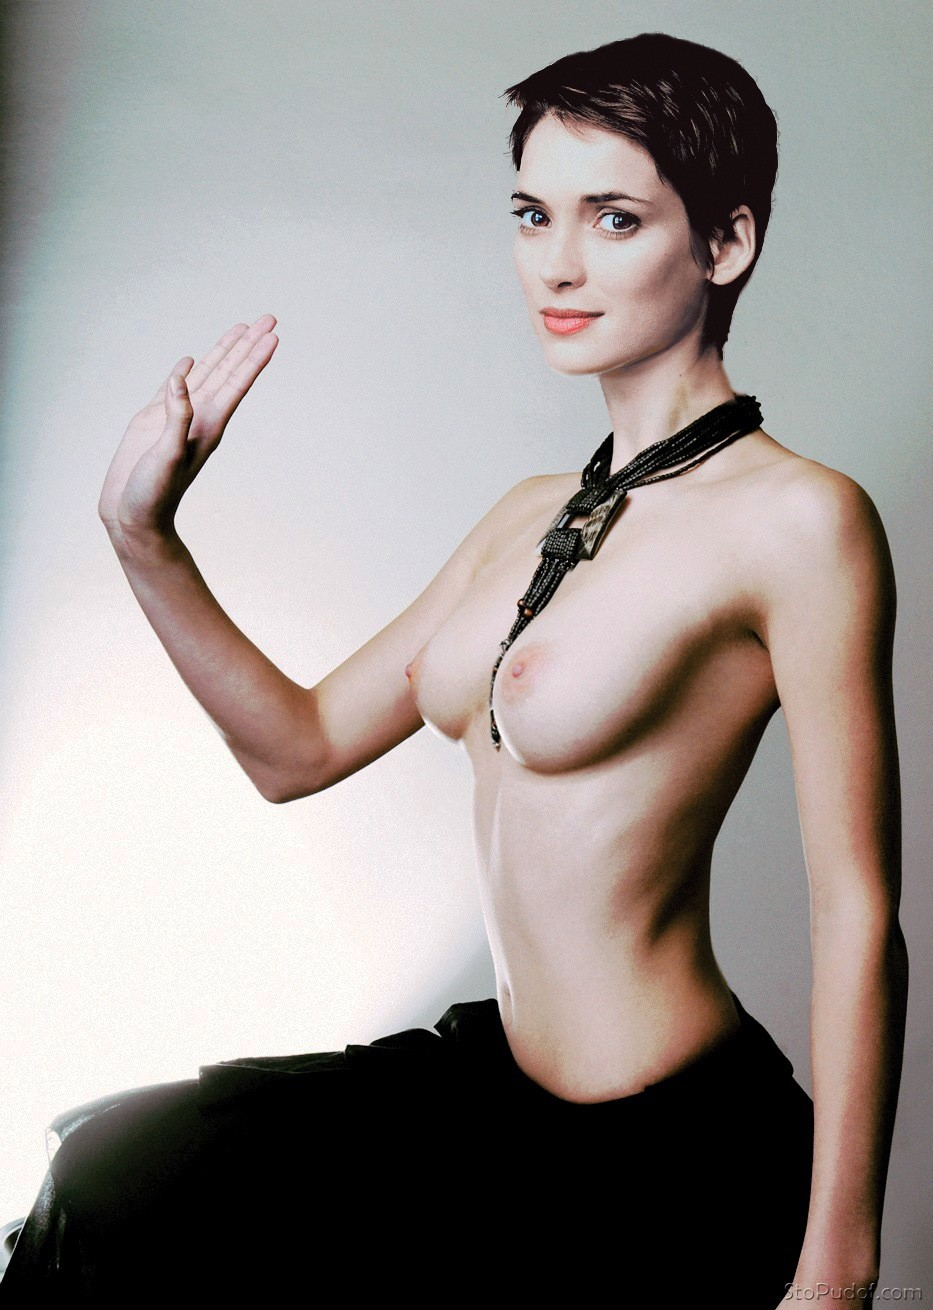 see nude pic of Winona Ryder - UkPhotoSafari